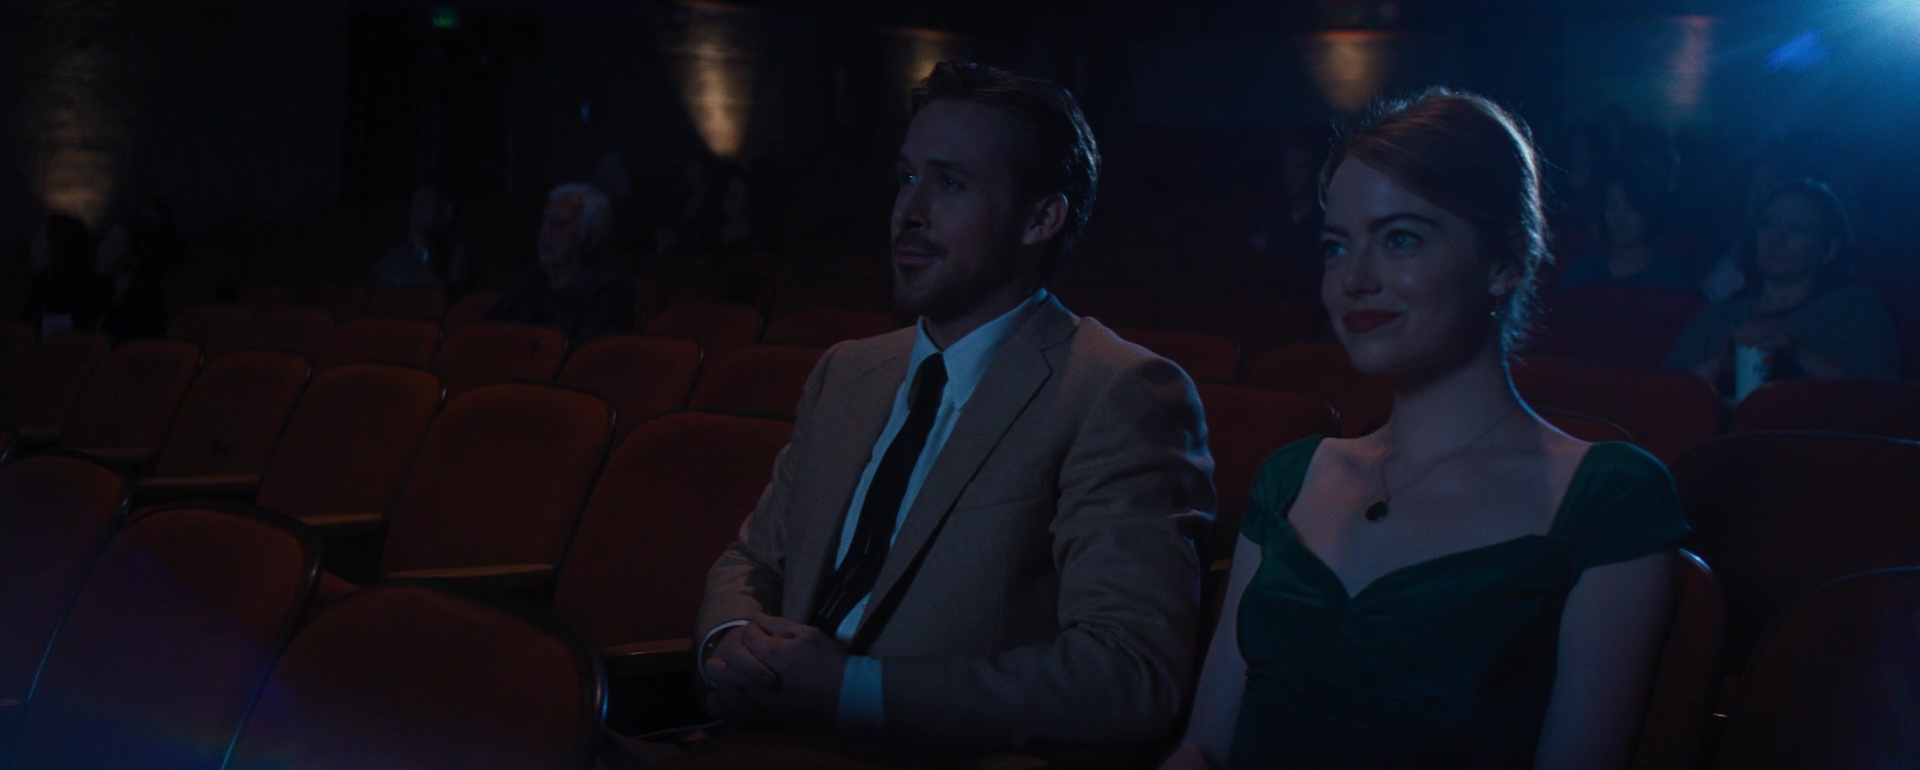 La La Land film still 10